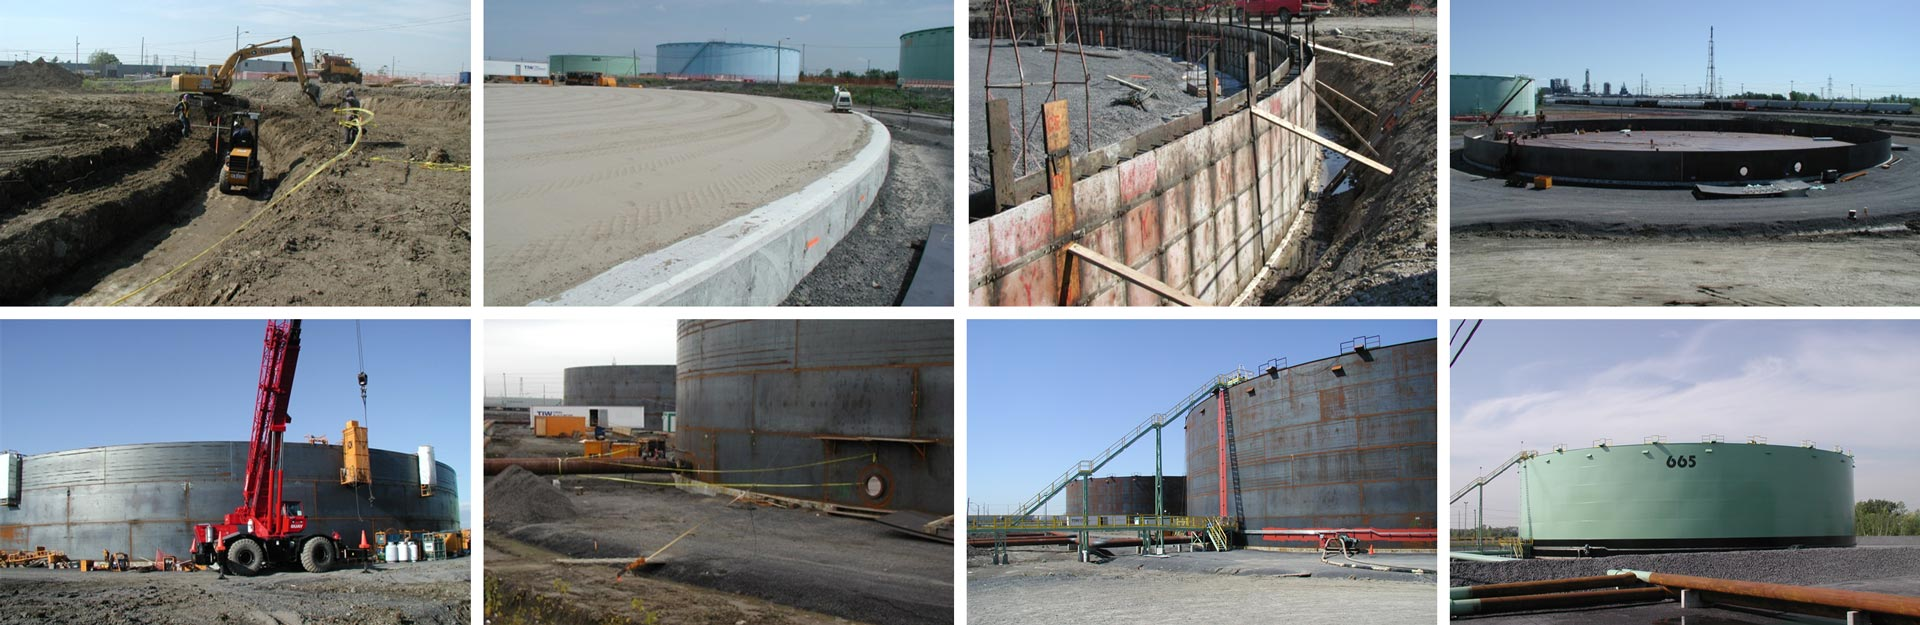 Turnkey Project for Three 220' x 56' High API Tanks